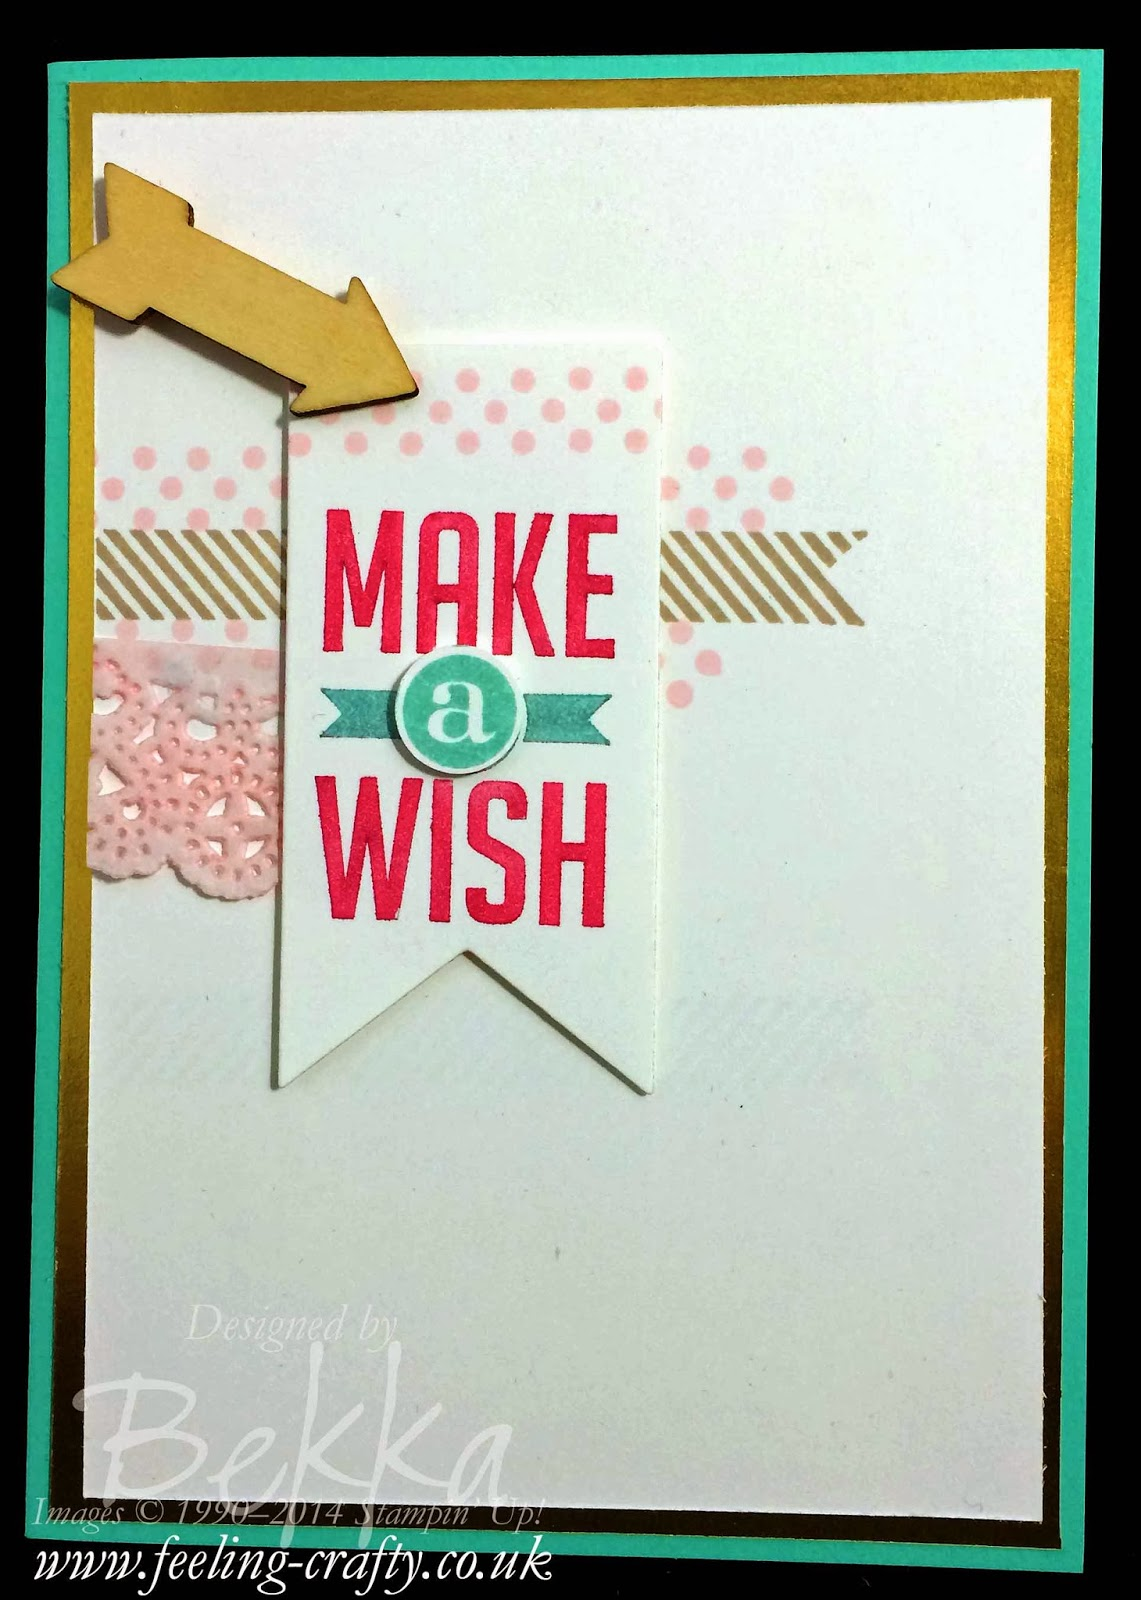 Perfect Pennats Make A Wish Card by UK based Stampin' Up! Demonstrator Bekka Prideaux - check out her blog for lots of great ideas